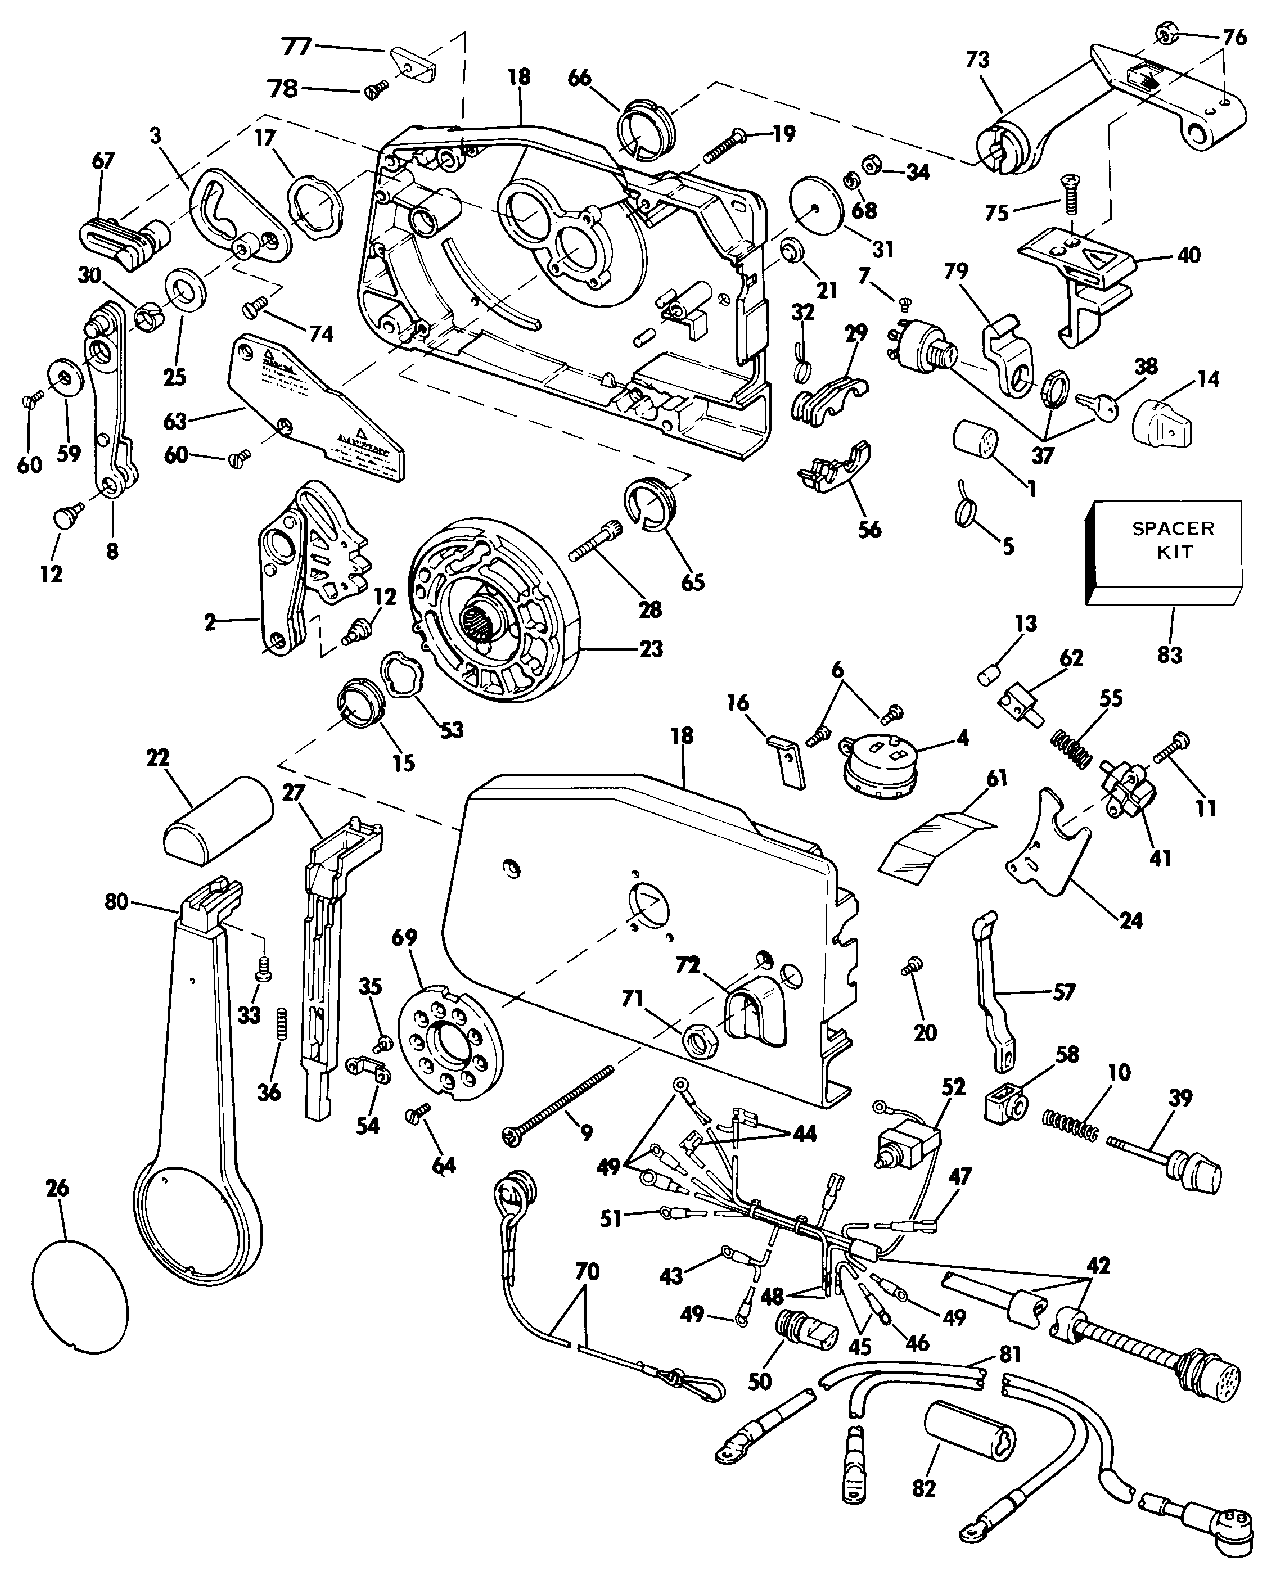 Omc Throttle Wiring Diagram Schematic Diagrams Control For Light Switch U2022 1977 Evinrude V4 Schematics